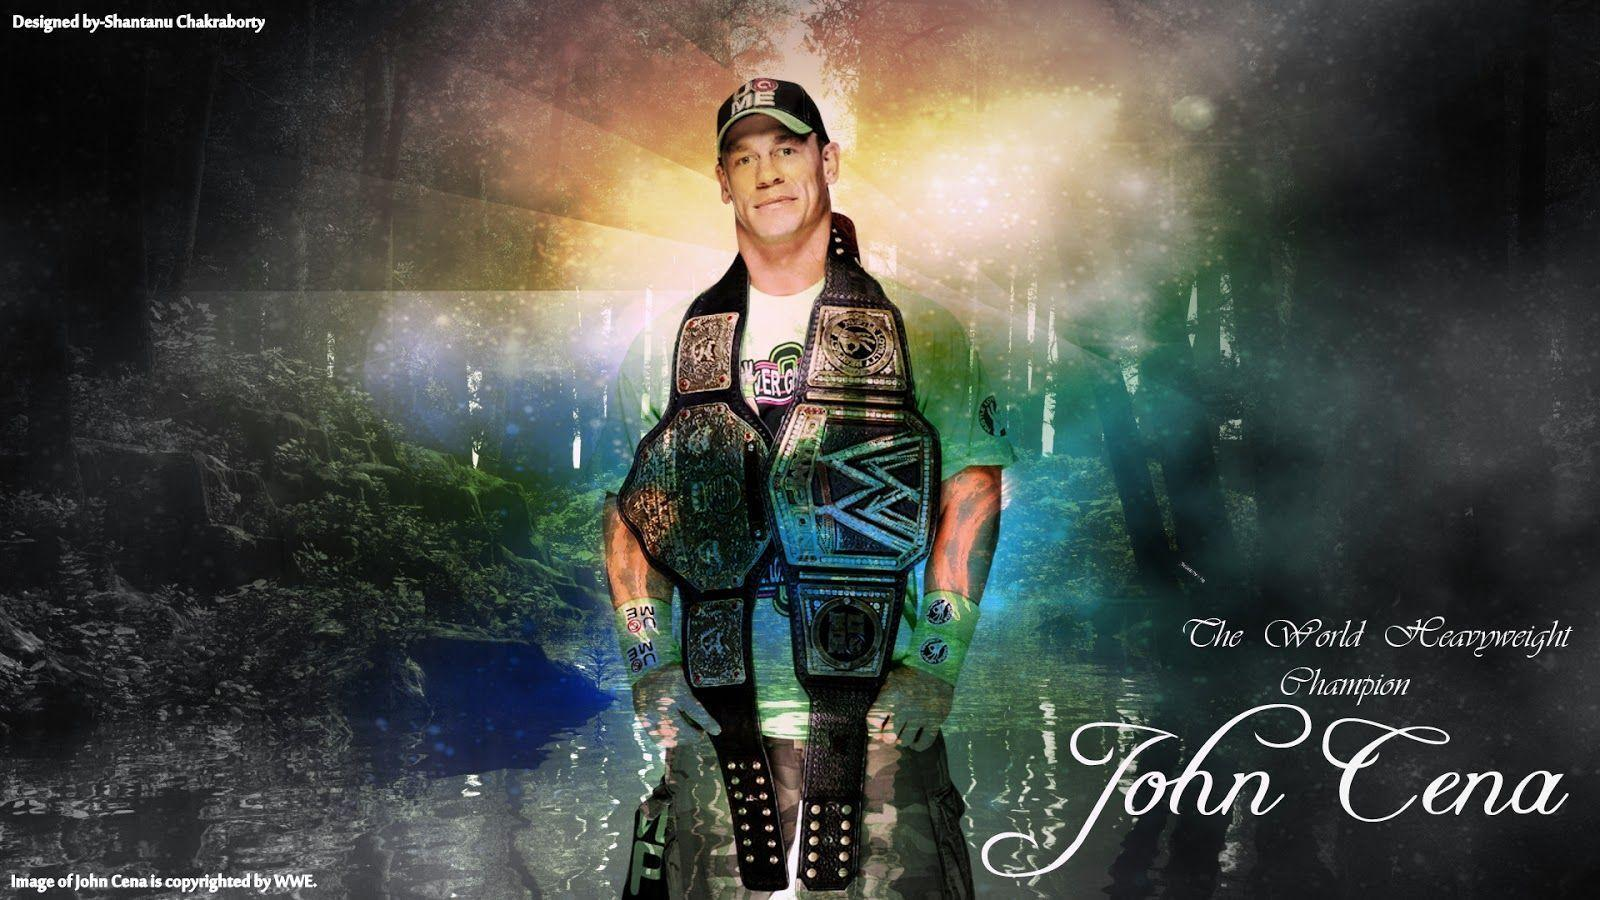 wwe wallpaper 1280x1024 jhone chena - photo #30